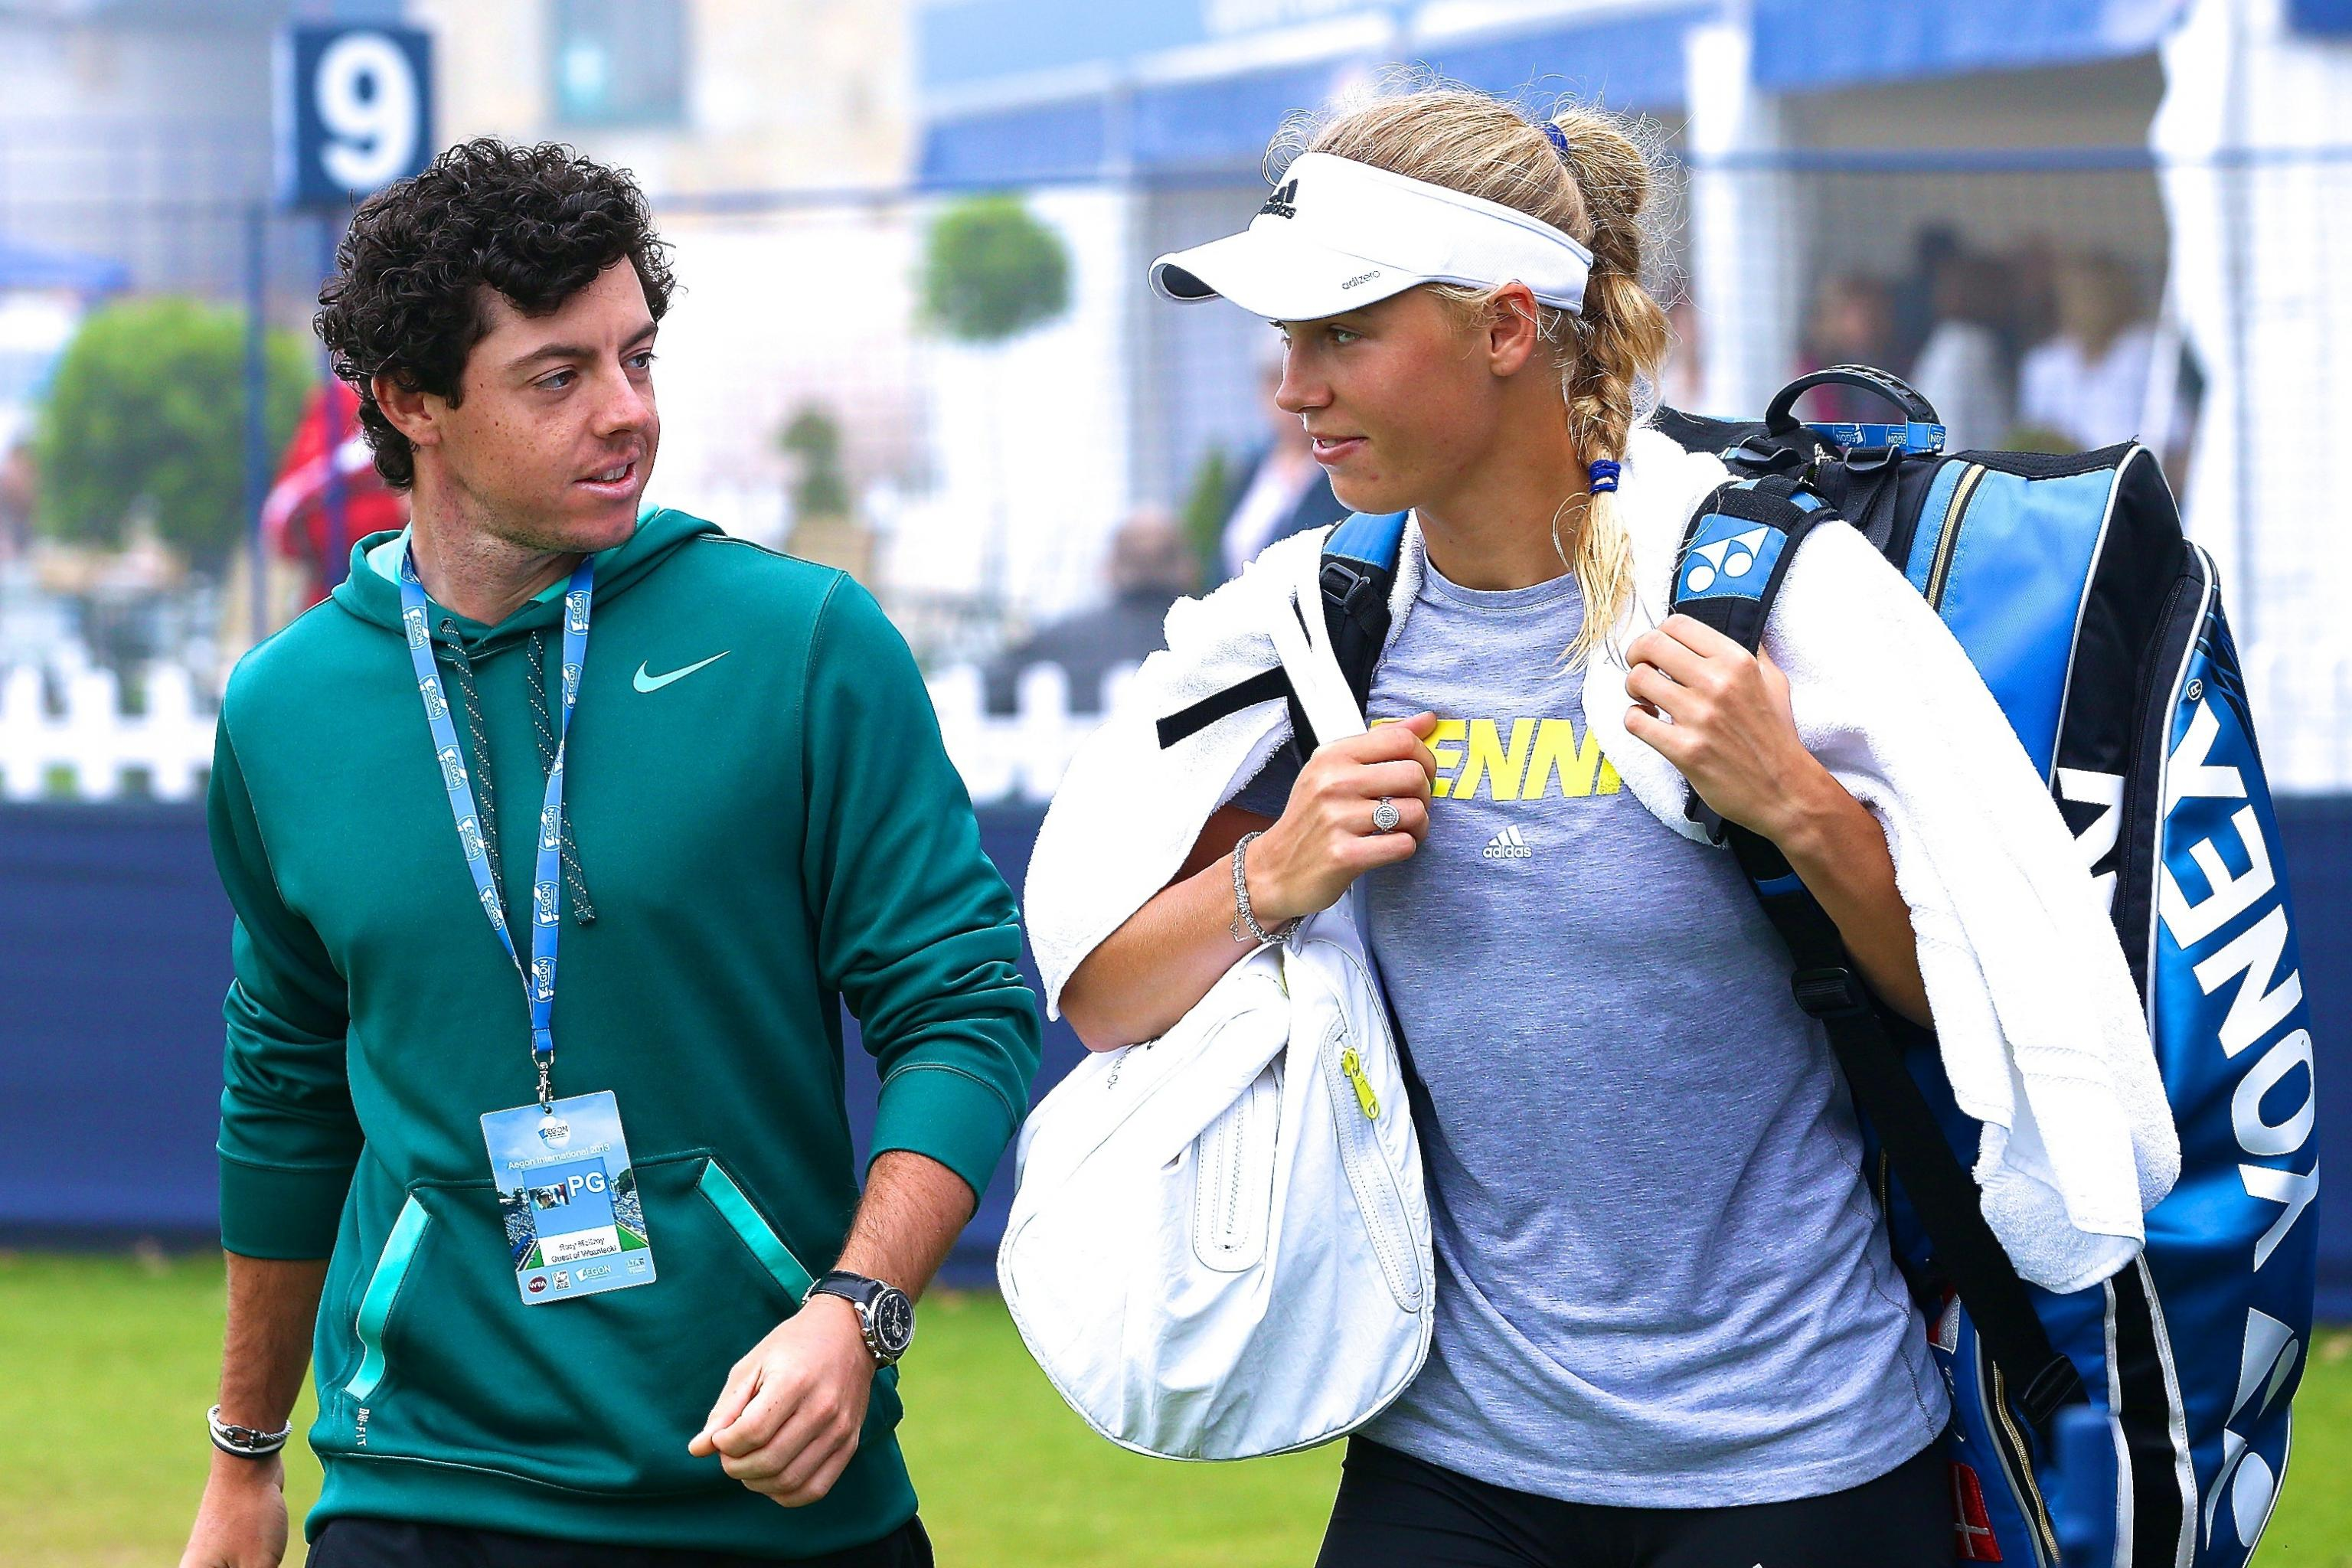 Rory Mcilroy Reportedly Broke Up With Caroline Wozniacki In 3 Minute Phone Call Bleacher Report Latest News Videos And Highlights